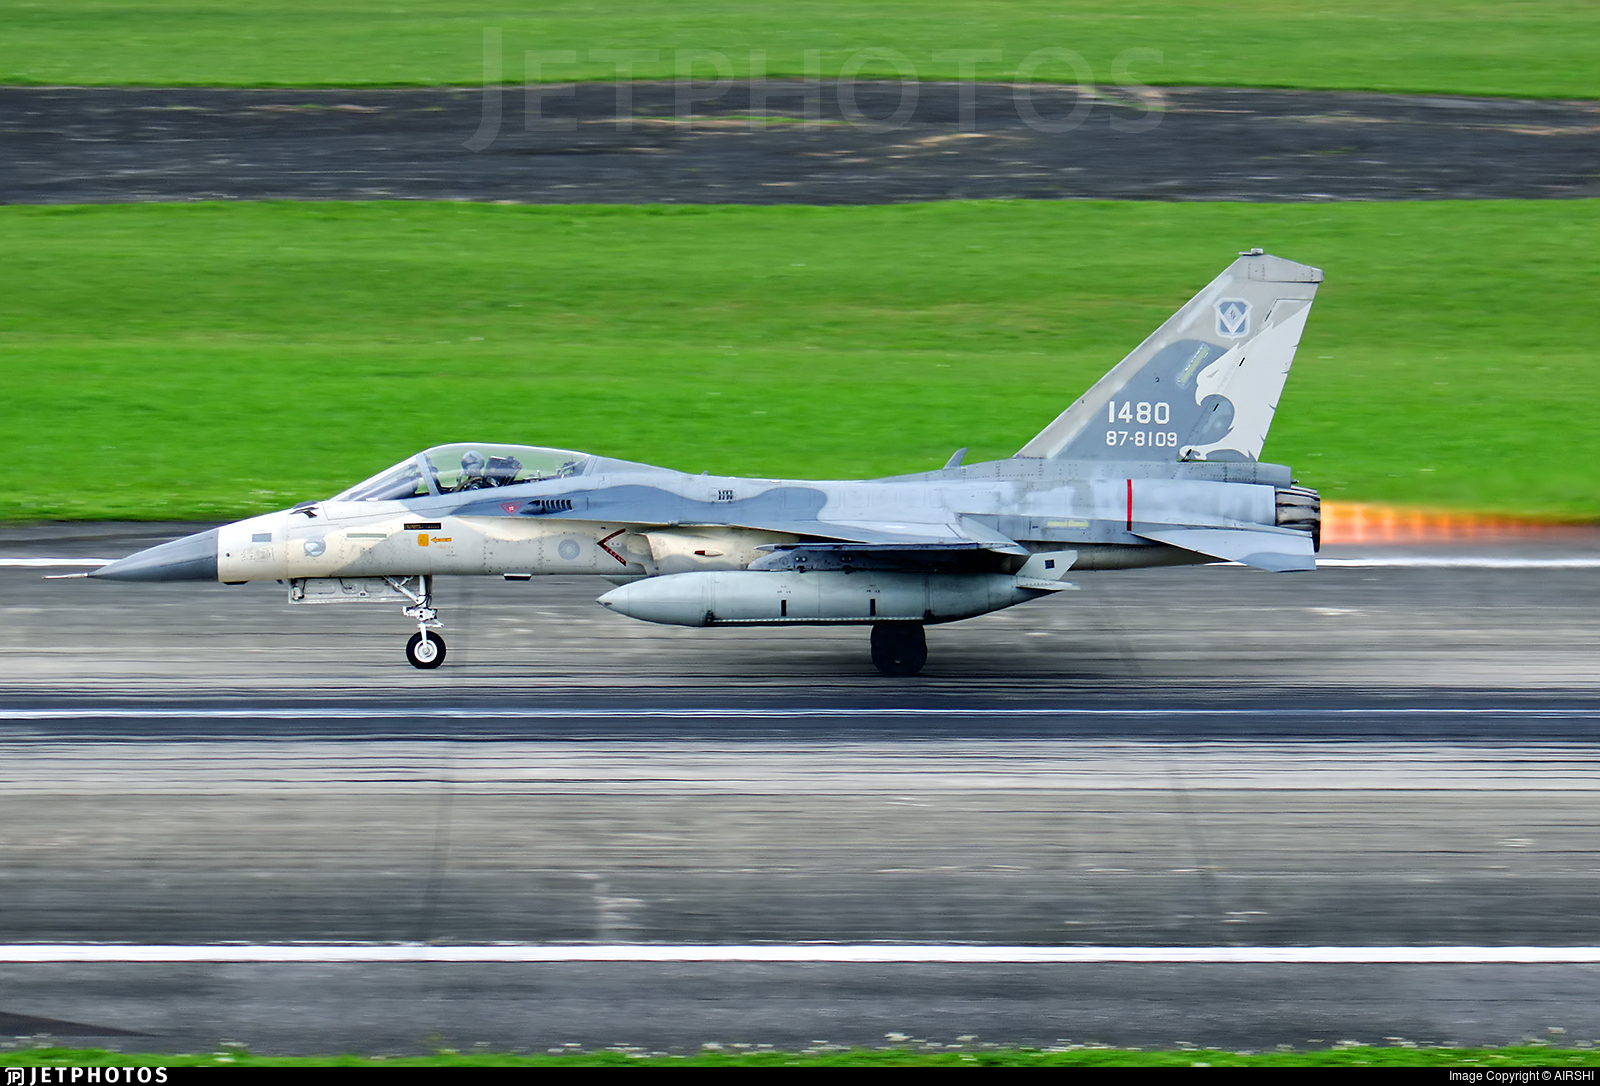 1480 - AIDC F-CK-1C Ching Kuo - Taiwan - Air Force